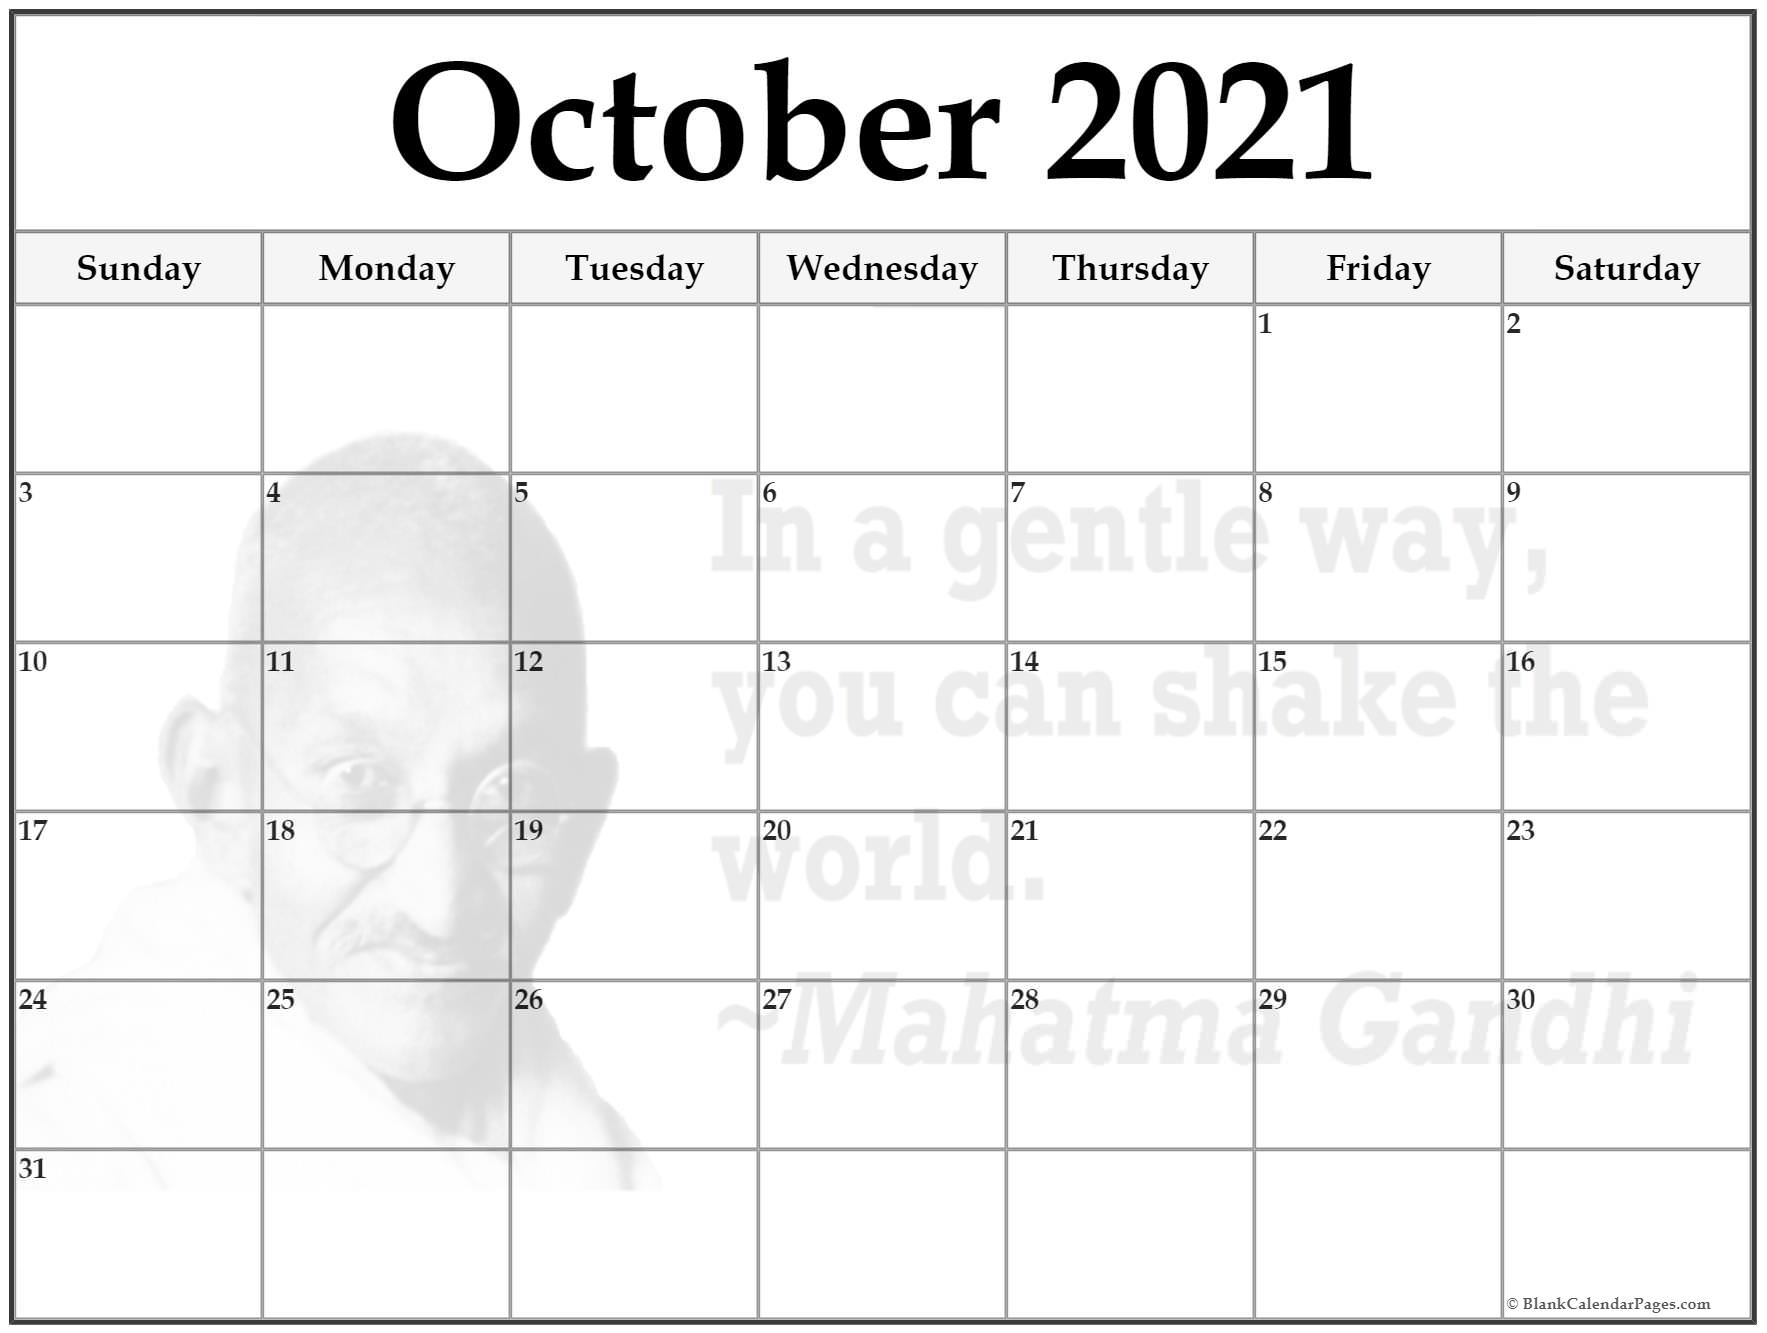 October 2020 quote calendar . In a gentle way, you can shake the world. ~Mahatma Gandhi